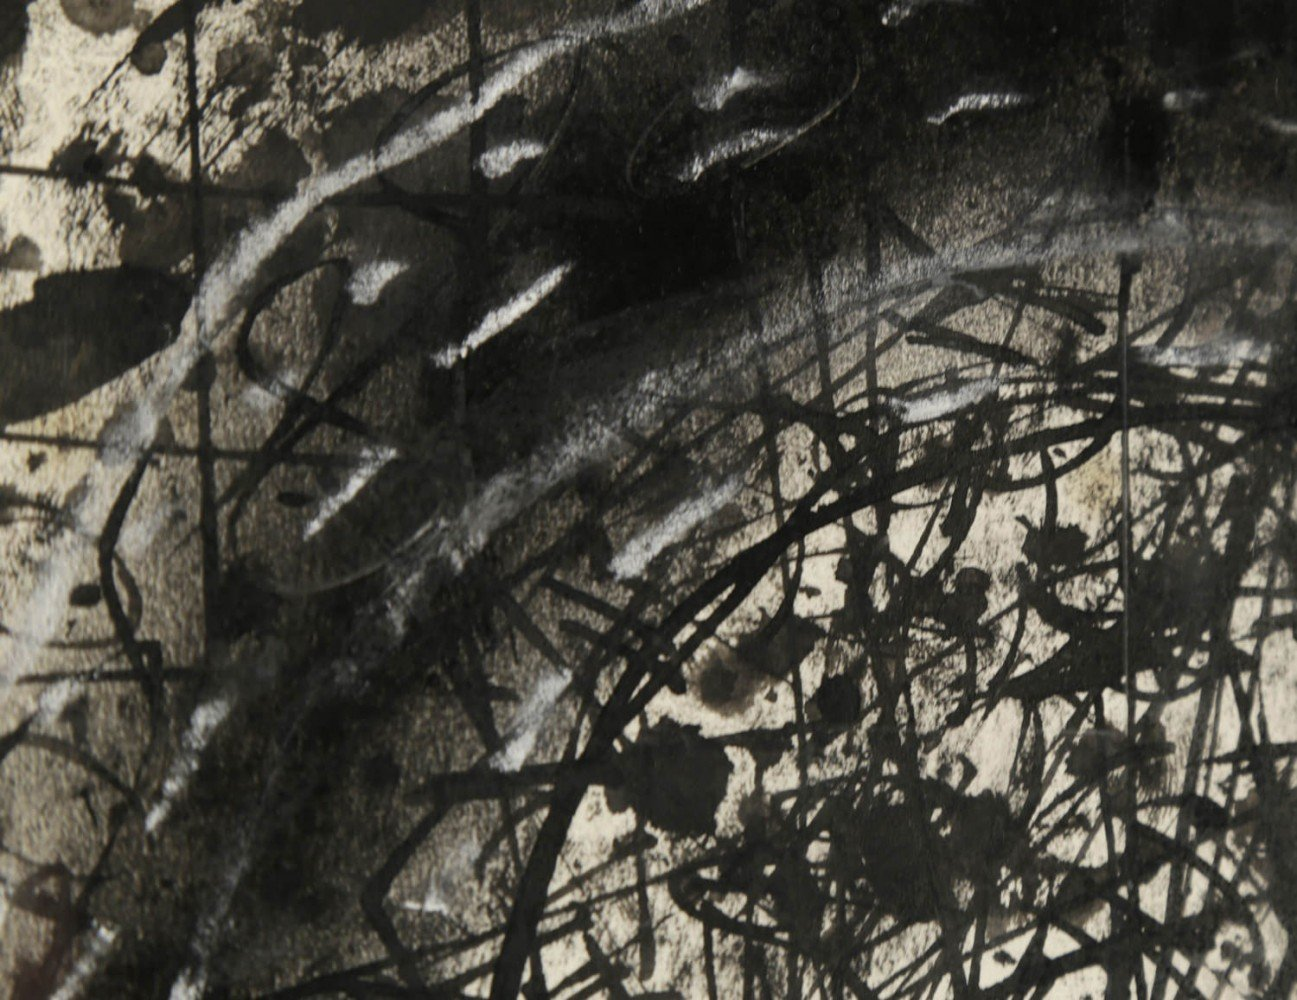 Abstract Ink, Oil, and Chalk on Paper Drawing: